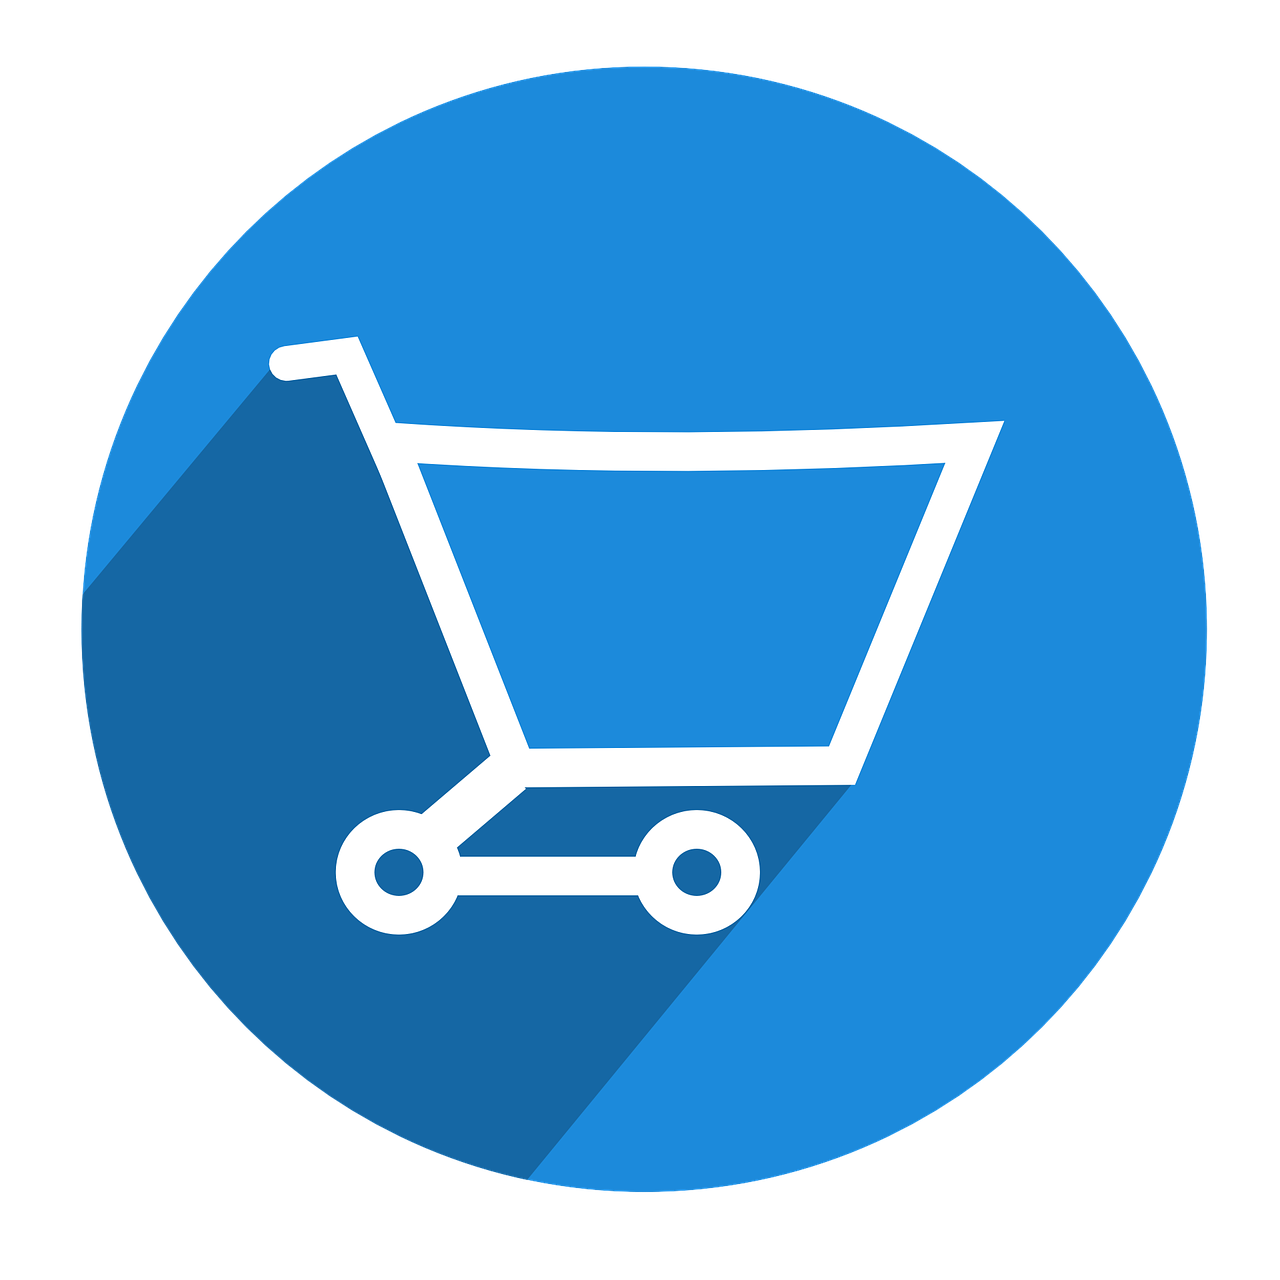 shopping-icon-2184065_1280.png